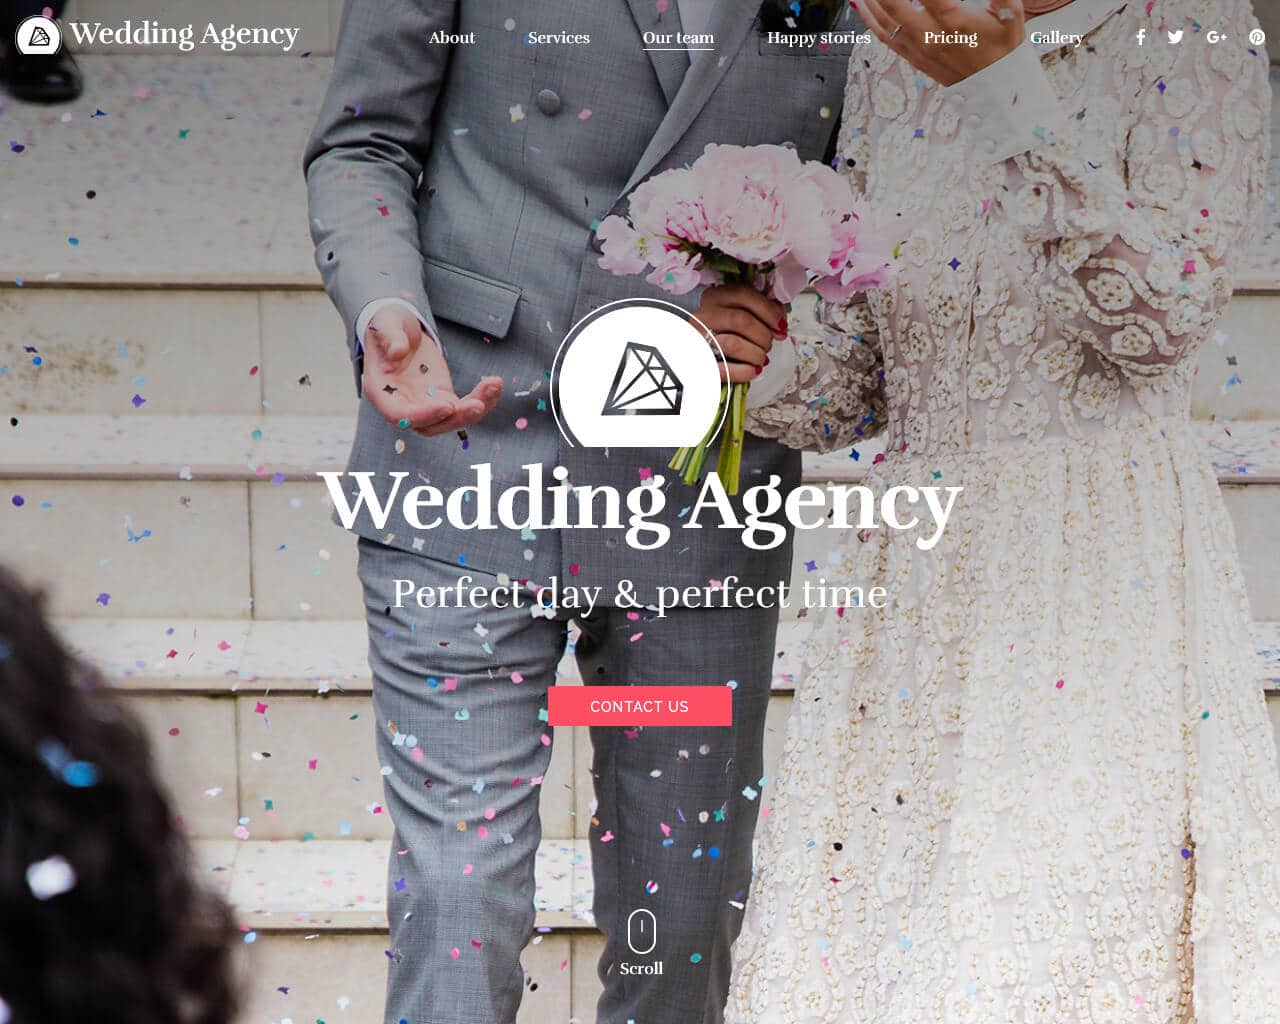 Wedding Agency Website Template